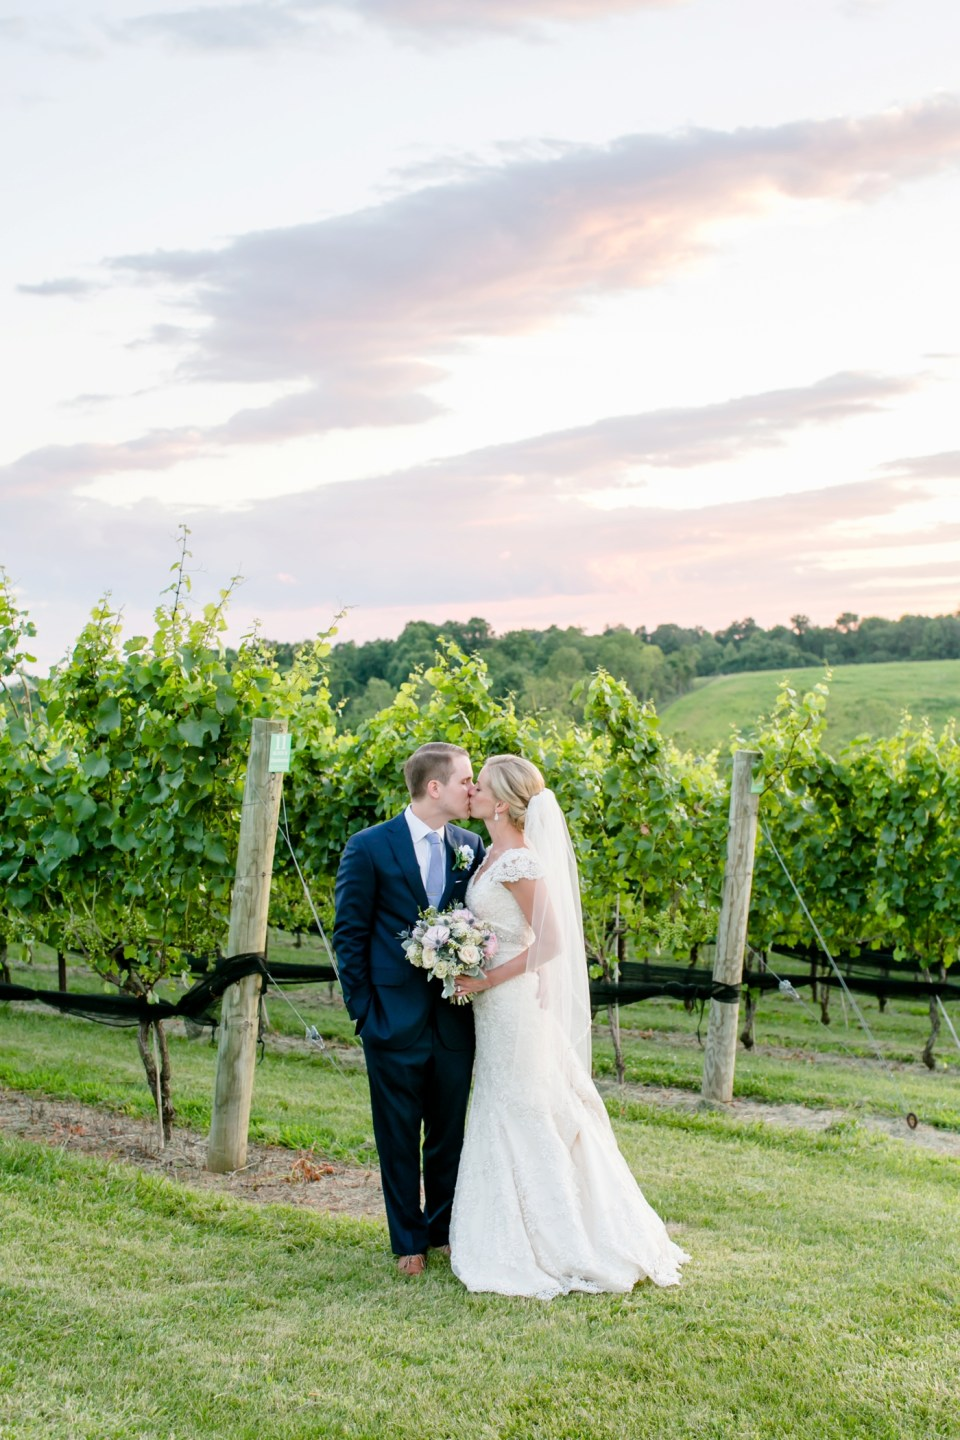 54A-Stone-Tower-Winery-Summer-Wedding-GG-1202